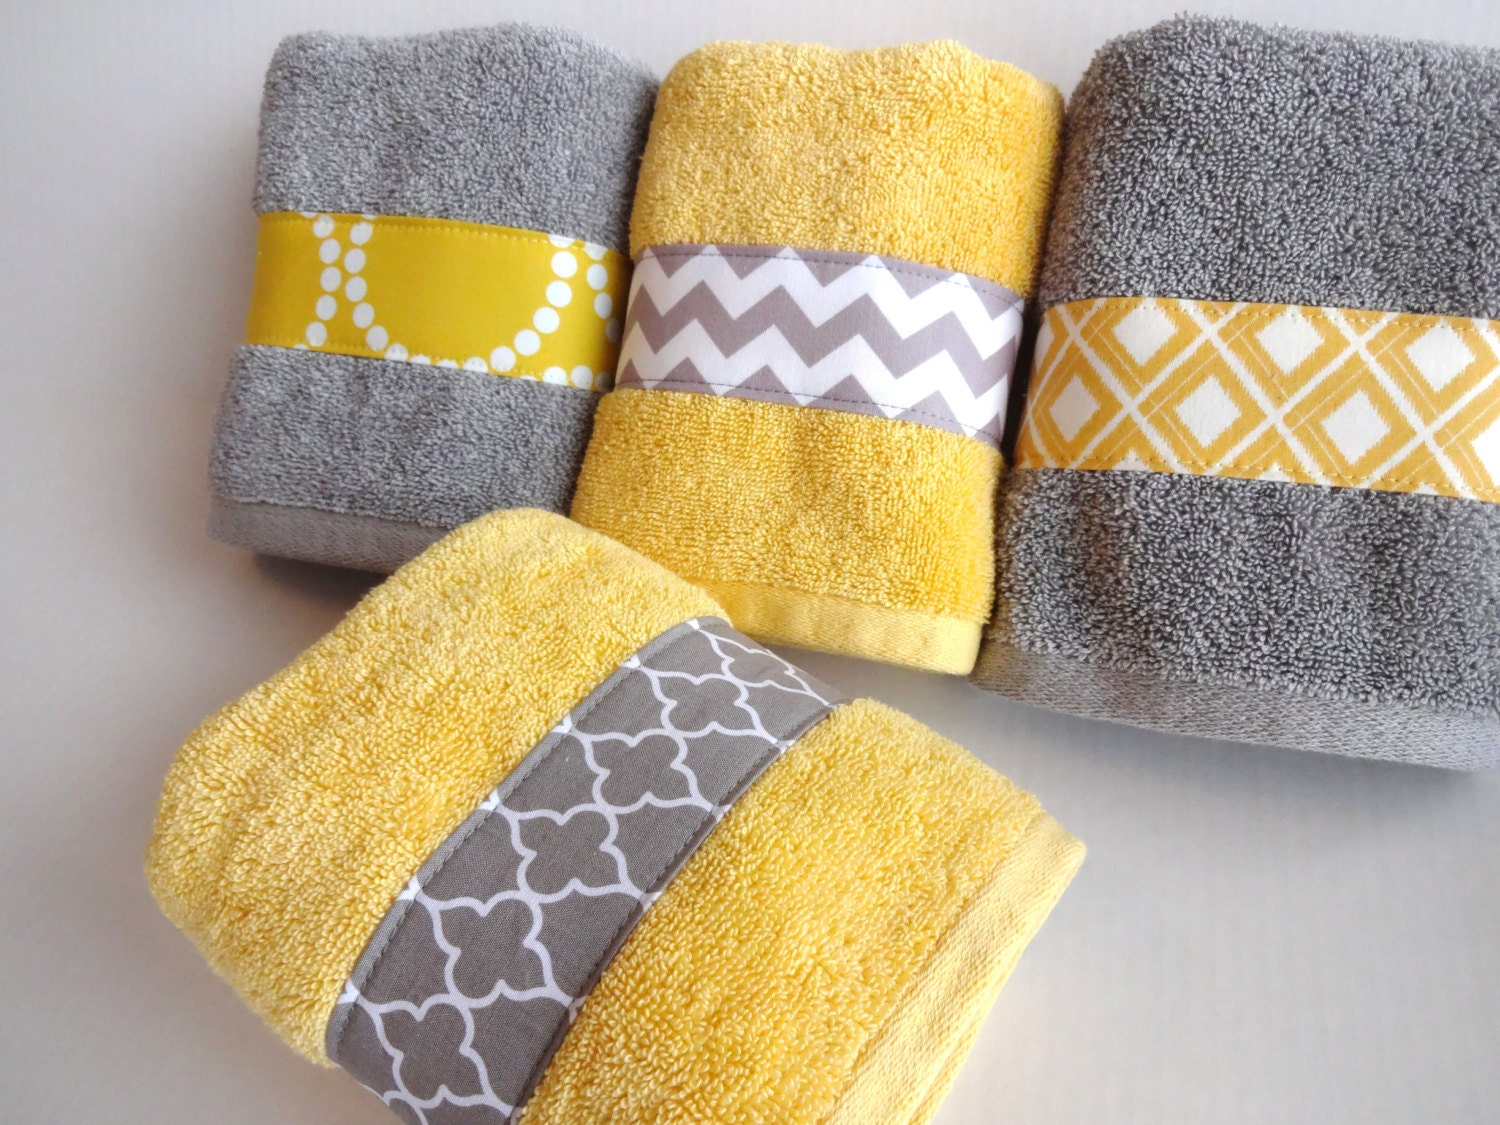 yellow bathroom accessories.  zoom Yellow and Grey Bath Towels yellow grey gray